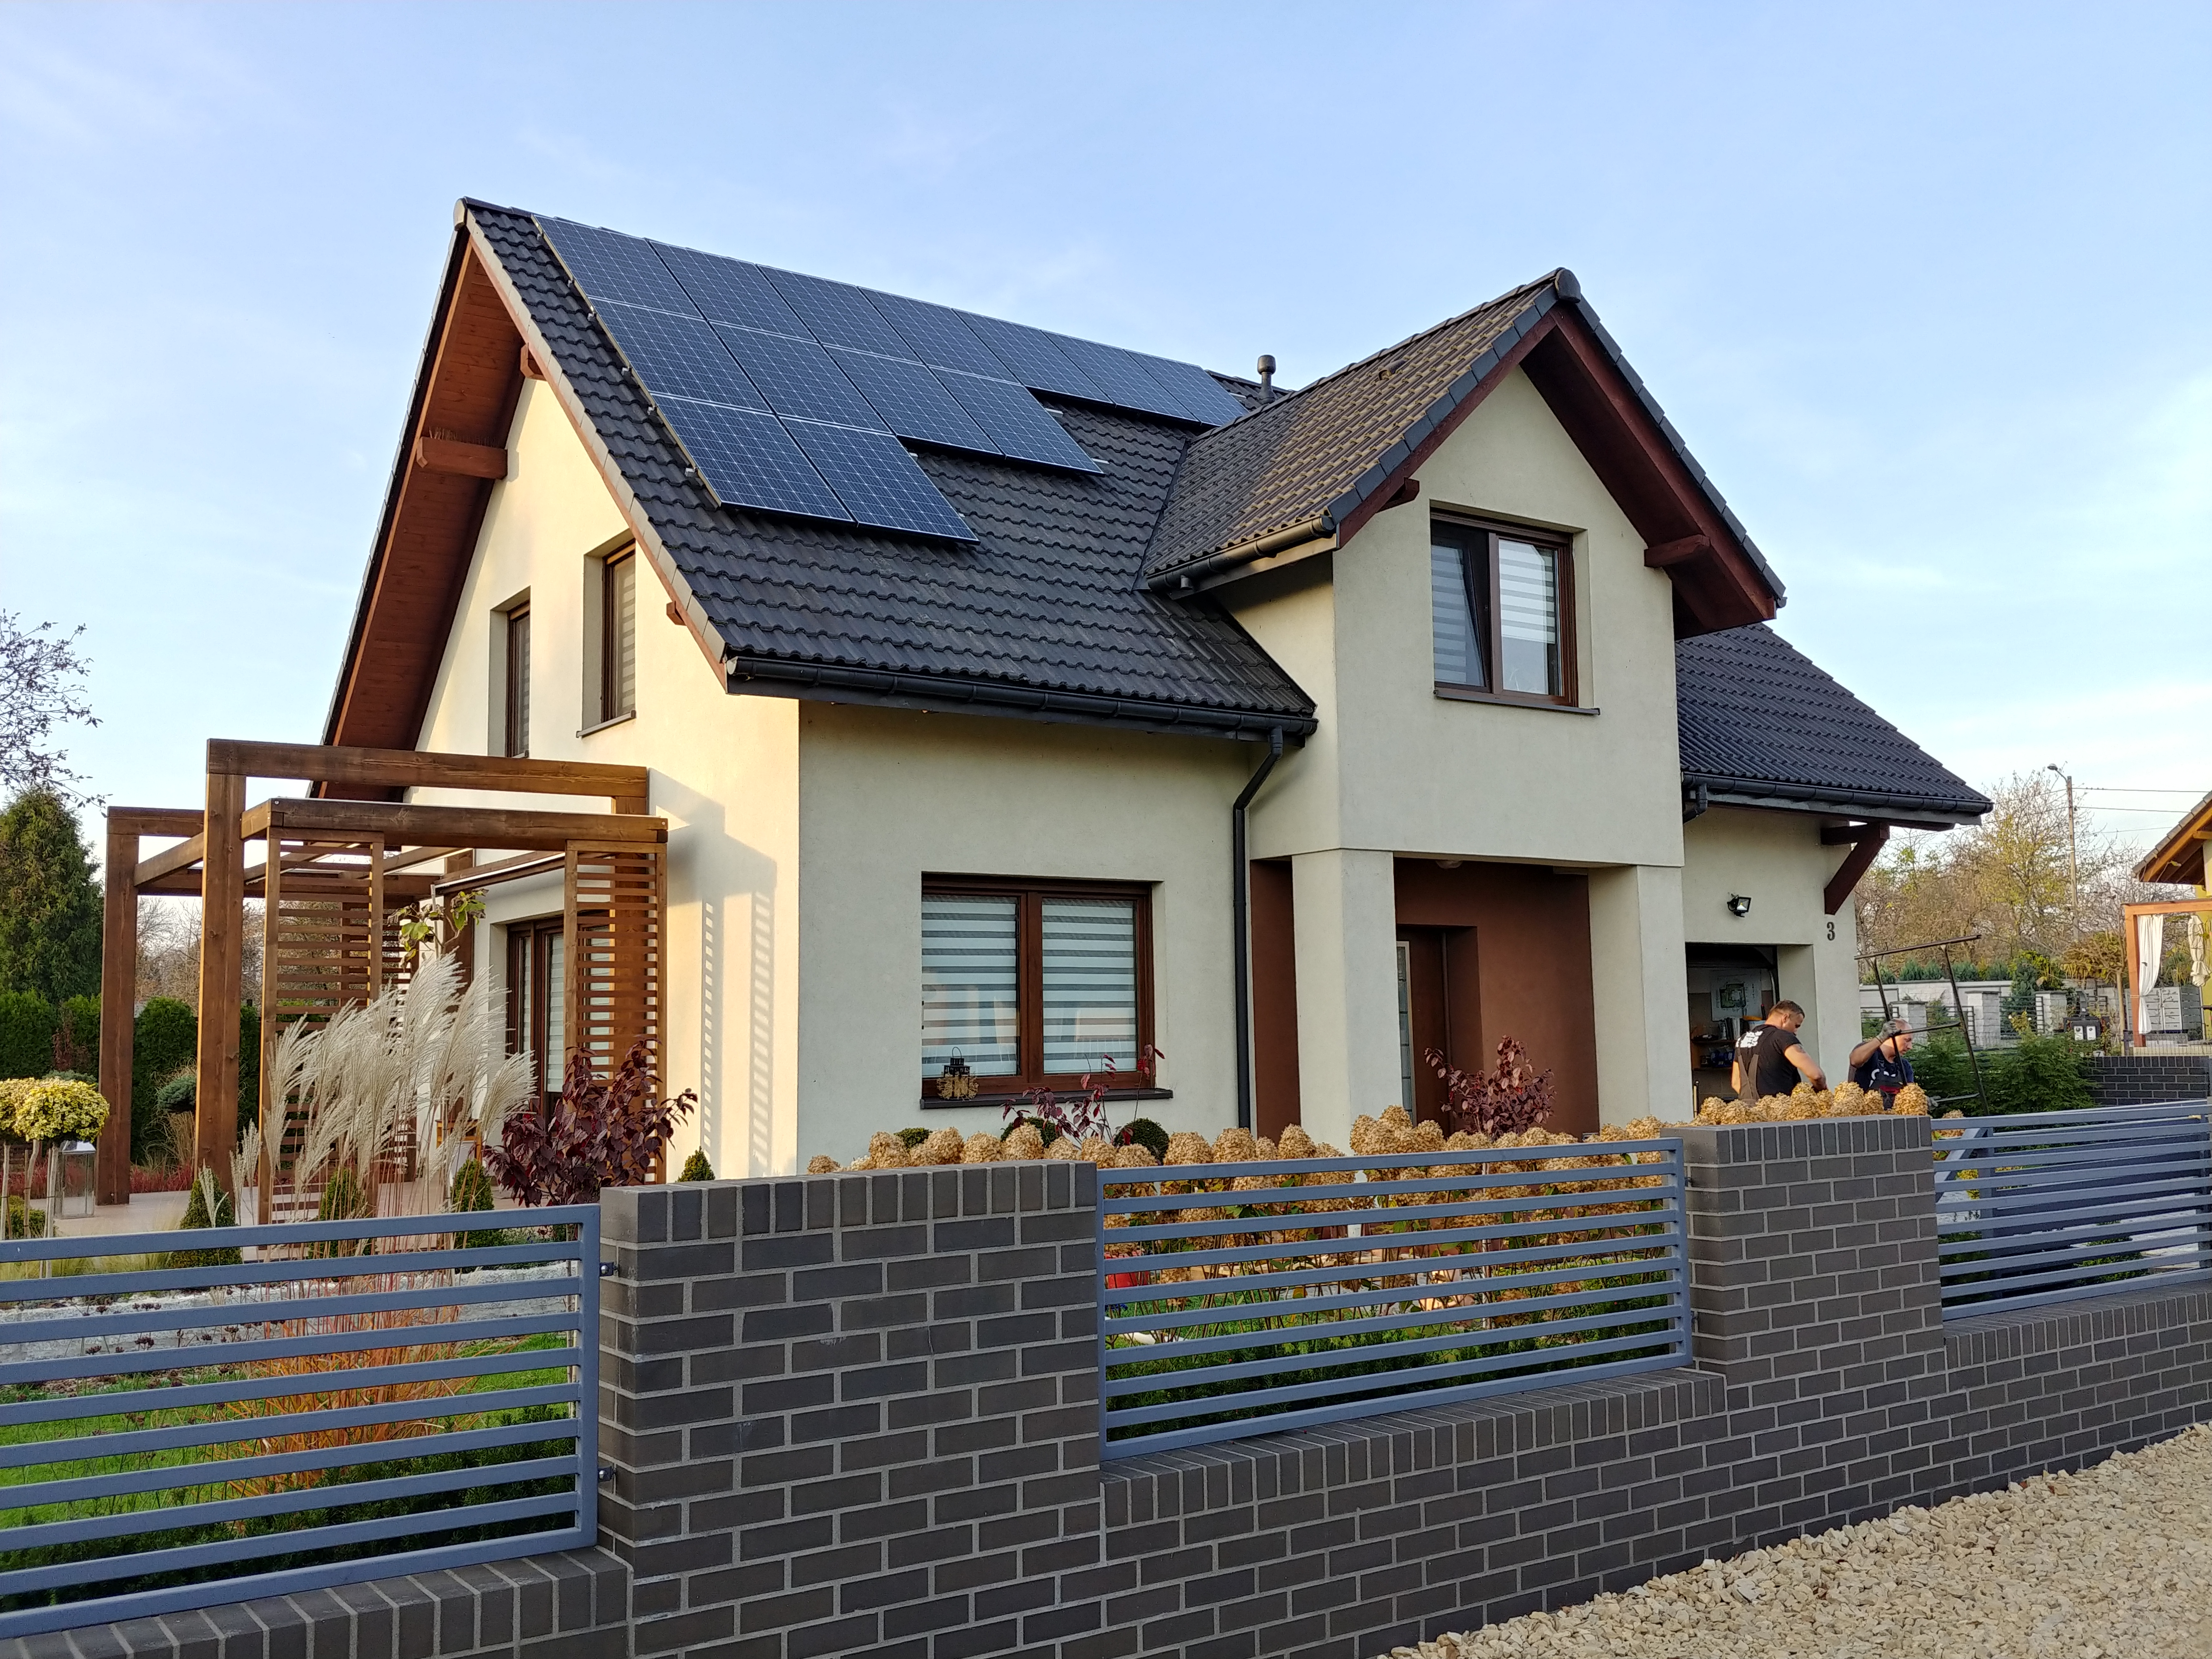 Installation with a maximum power of 6.2 kWp mounted on the south side of the gable roof in Zabrze.